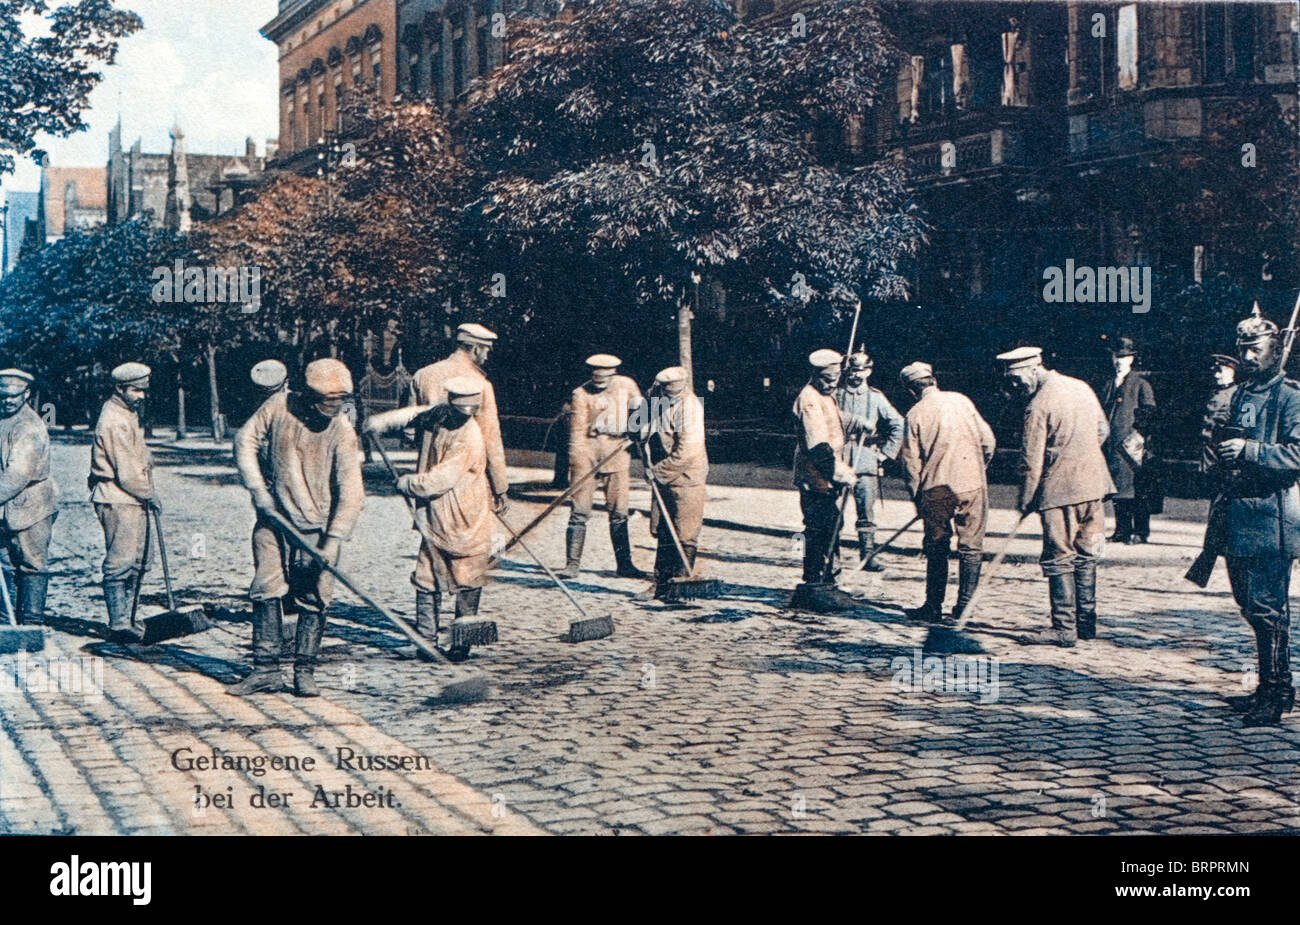 Russian prisoners of war sweeping a street in North Germany during the First World War. c1917 - Stock Image